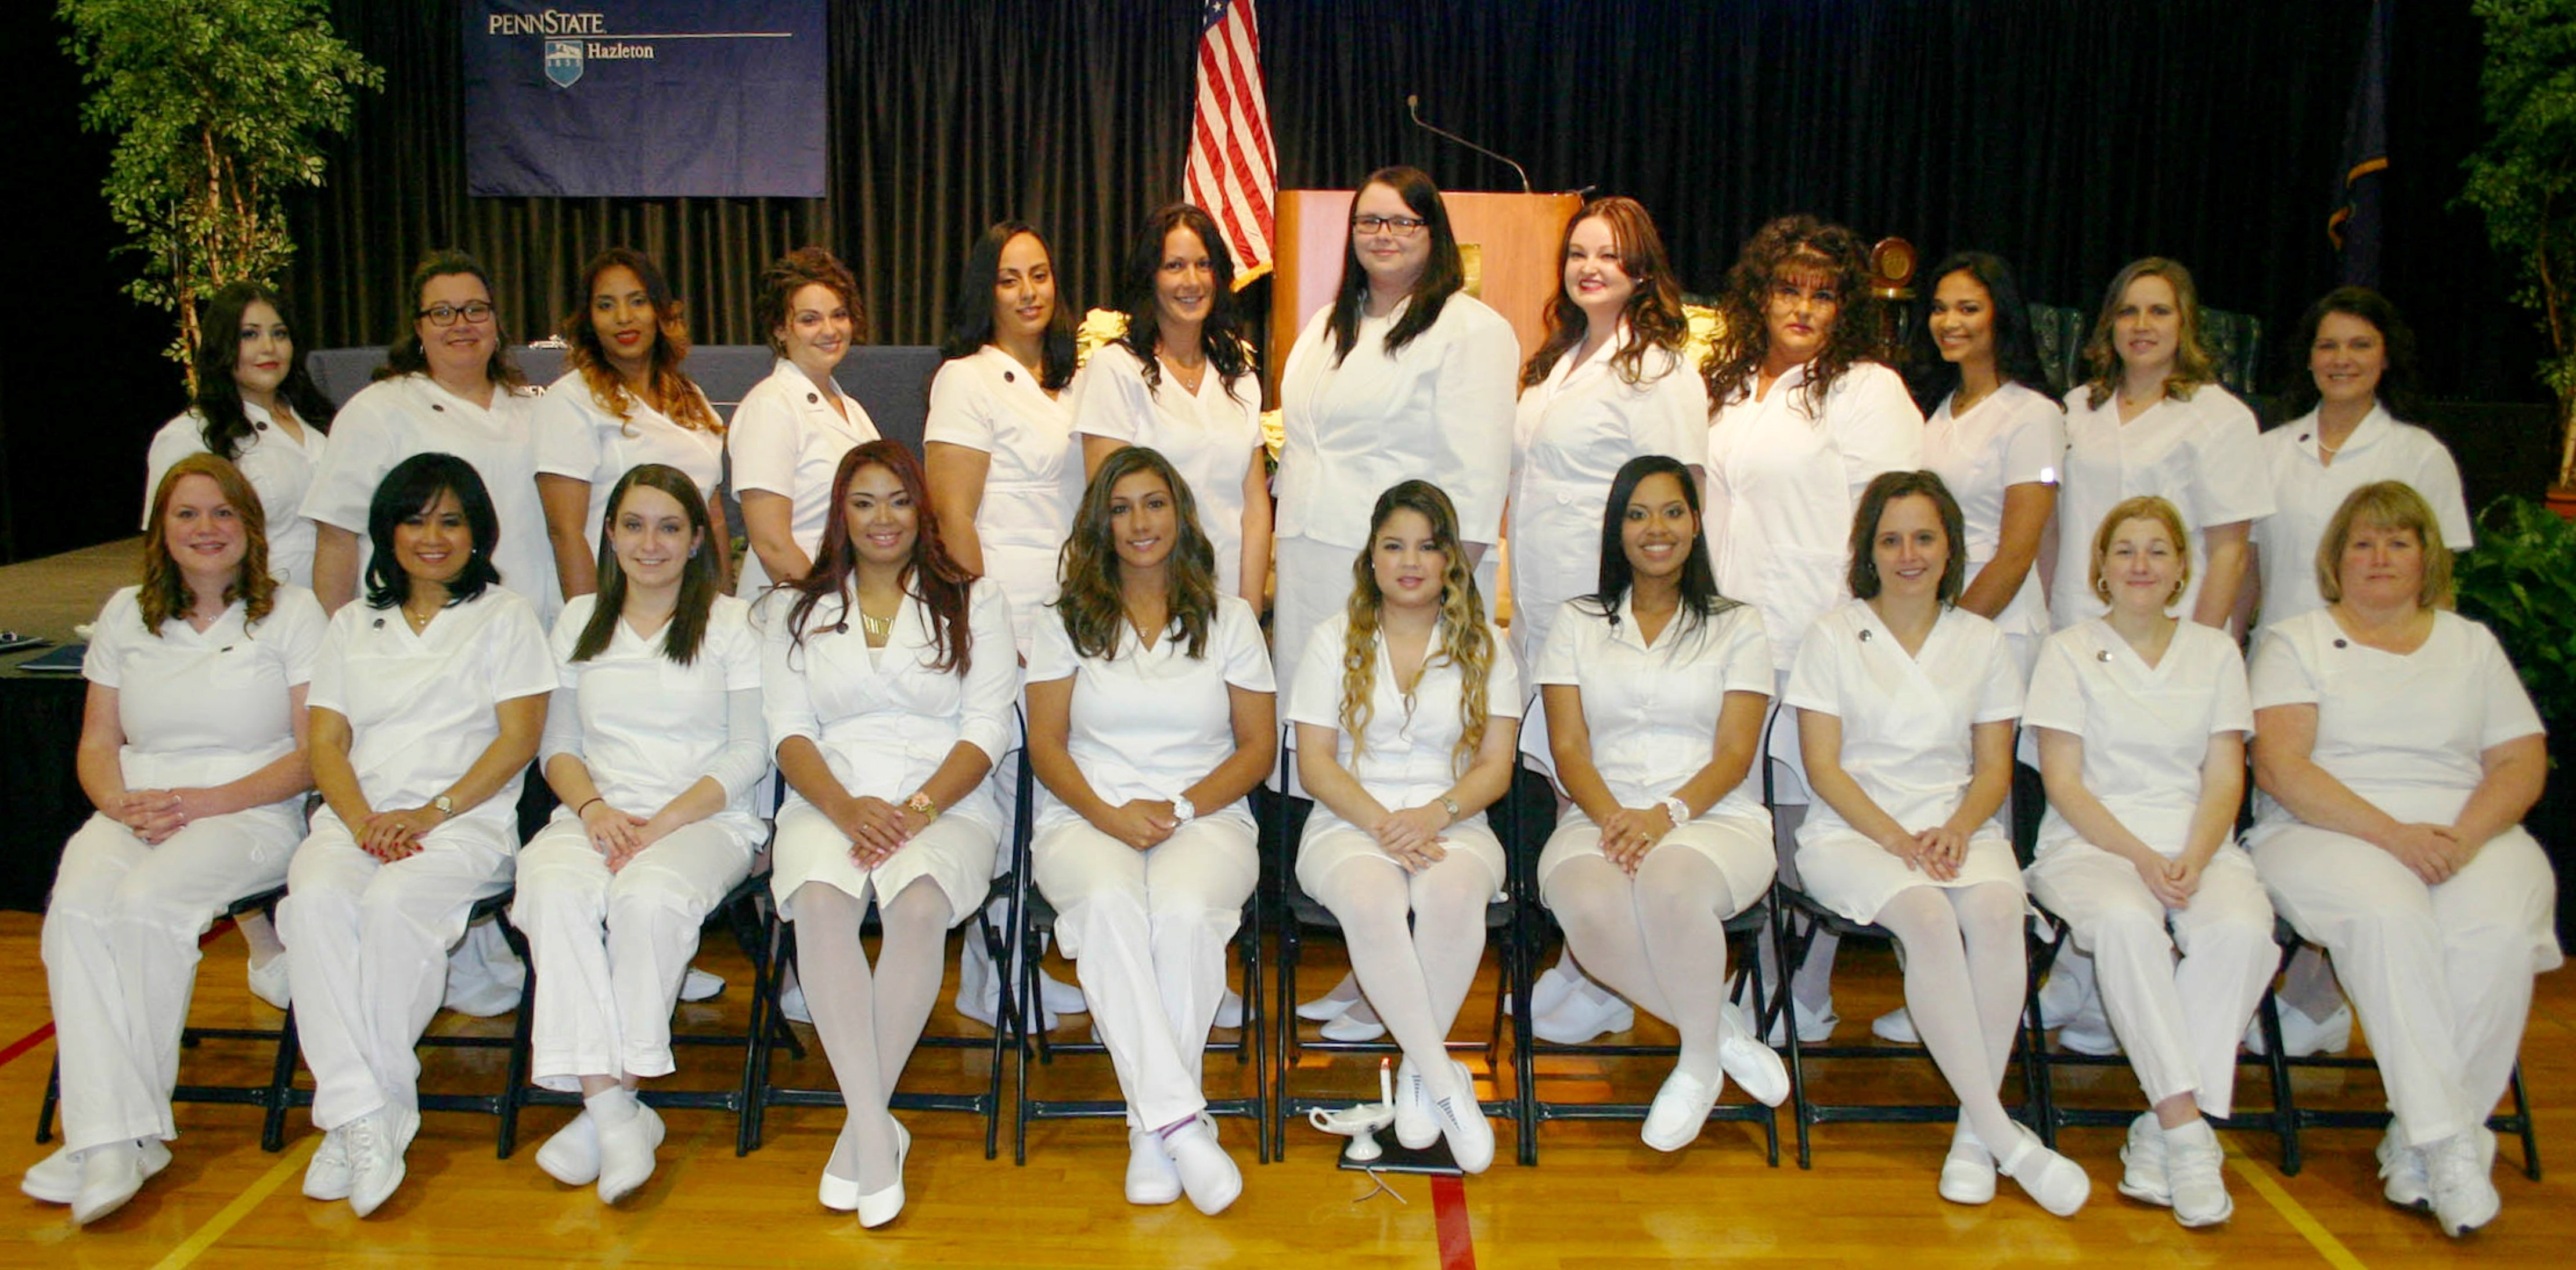 PENN STATE HAZLETON HOLDS GRADUATION CEREMONY FOR ...